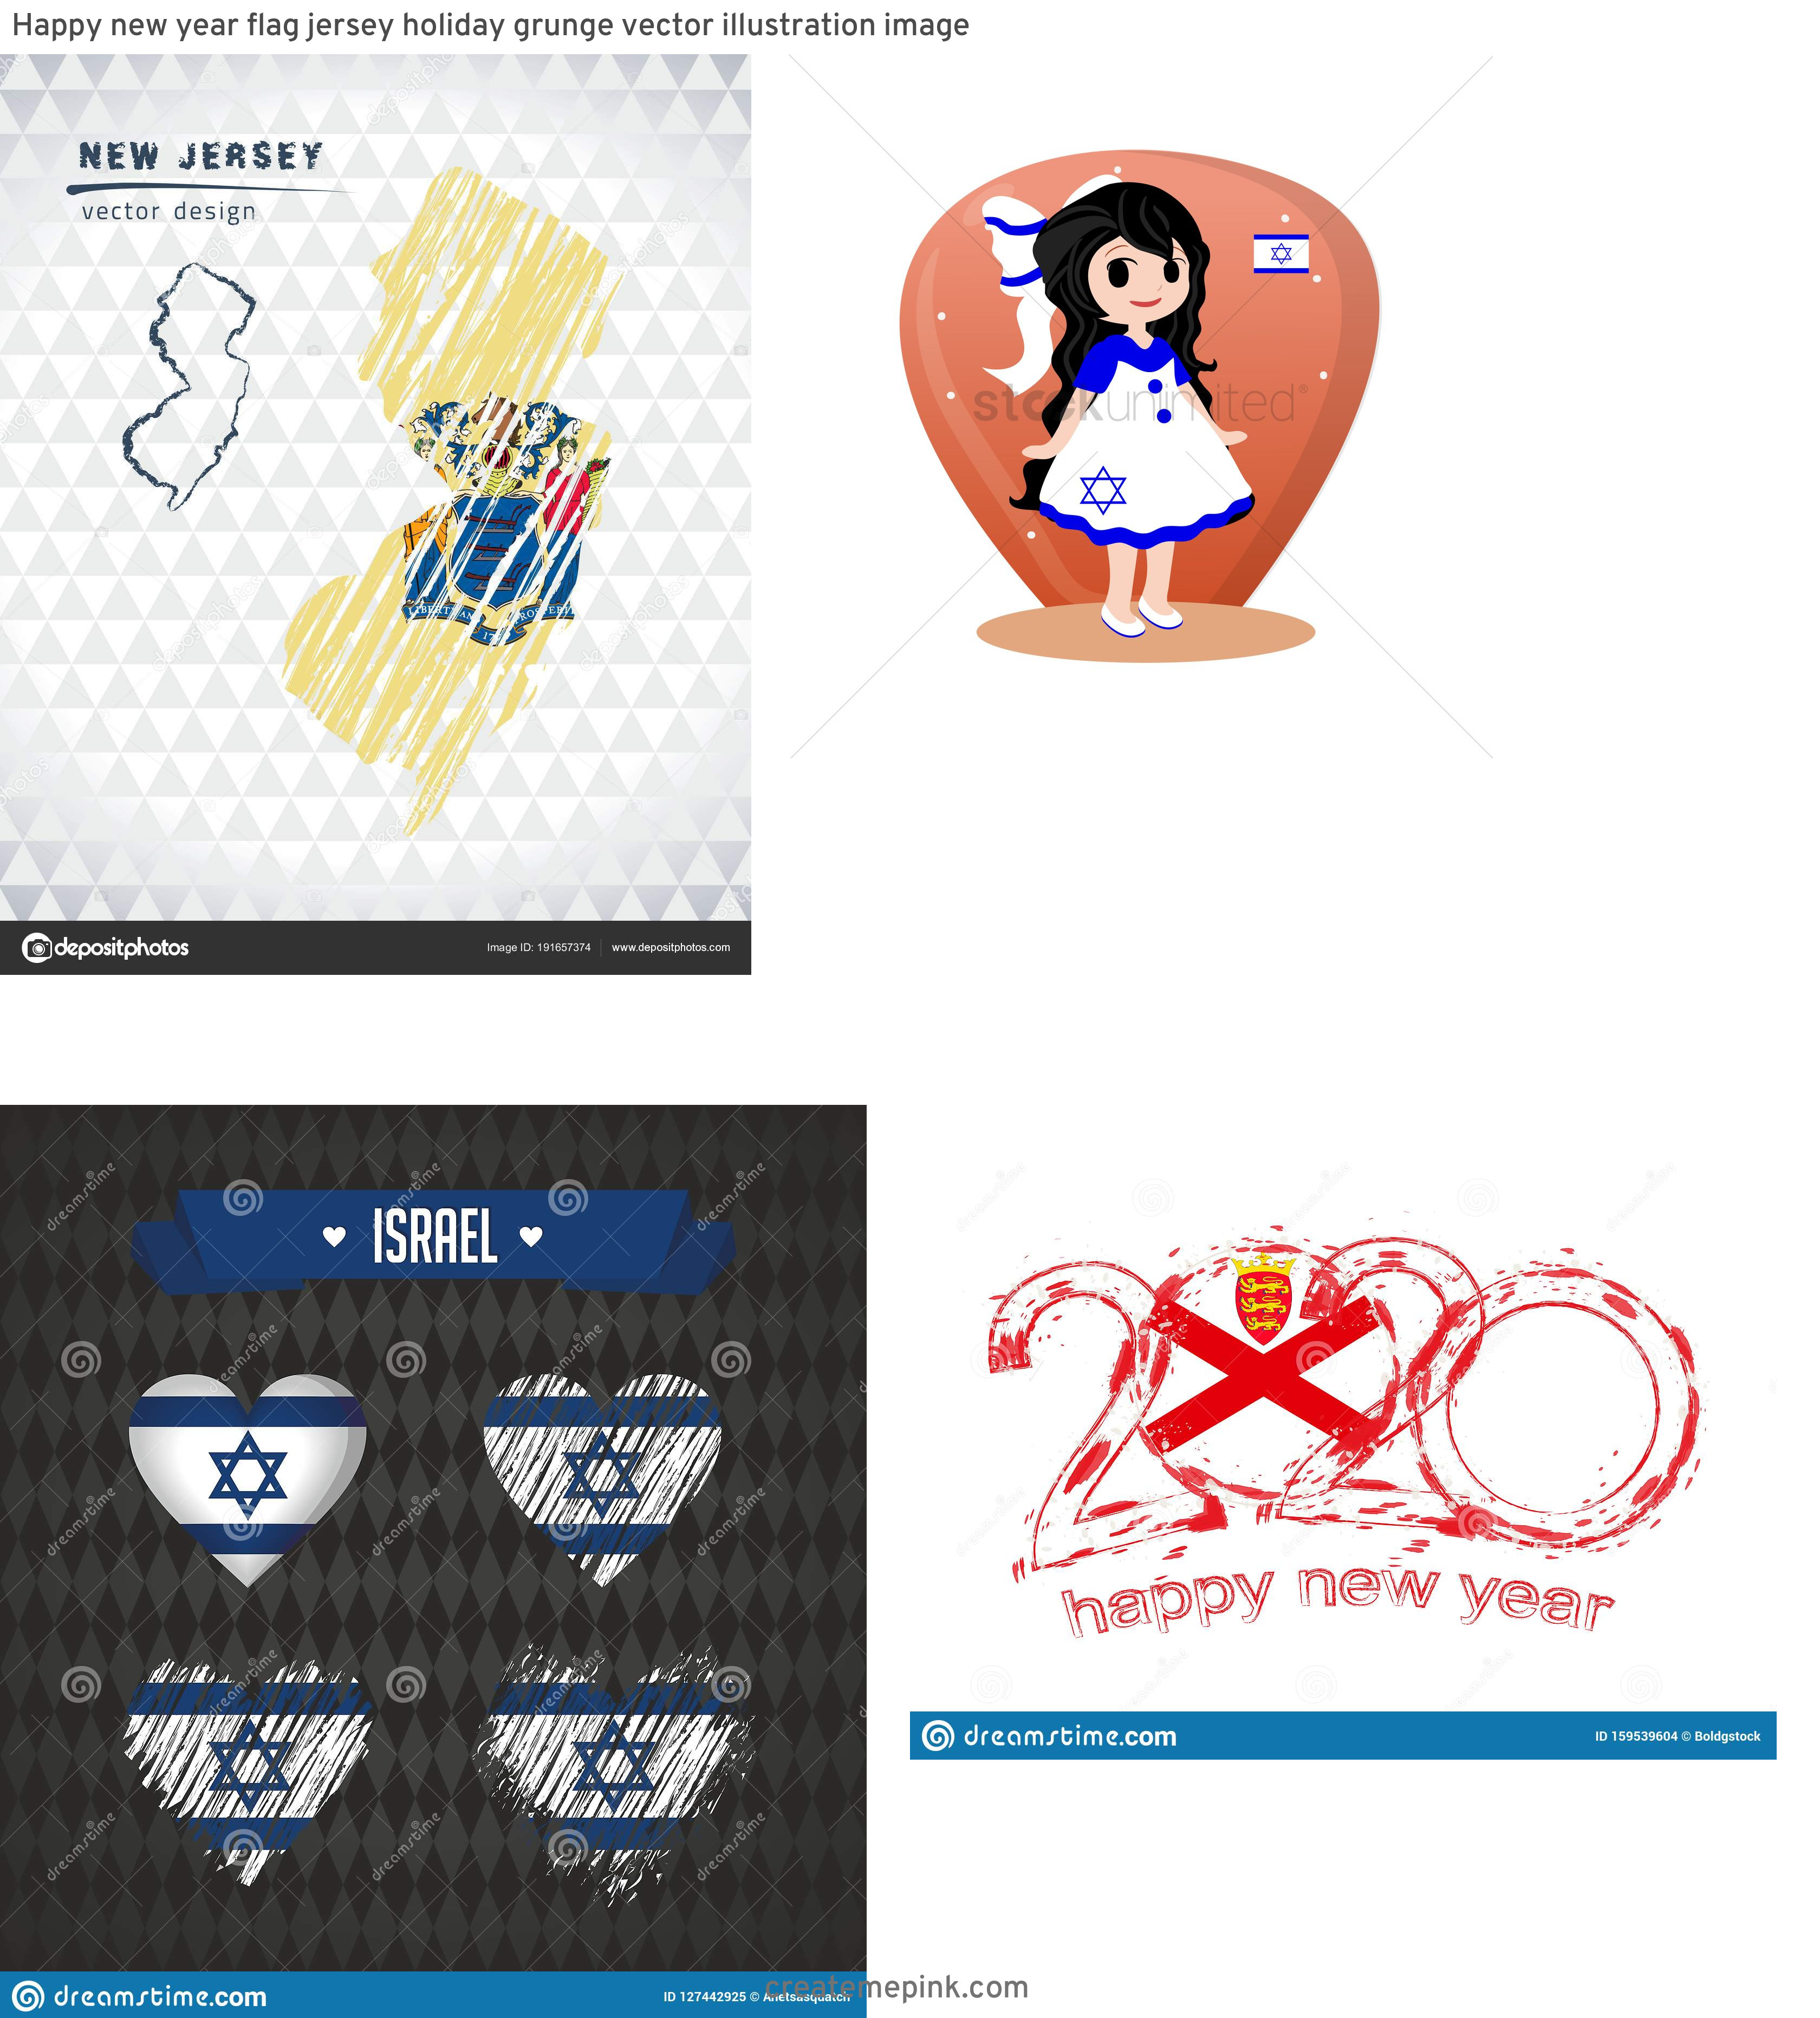 Israel And New Jersey Flag Vector: Happy New Year Flag Jersey Holiday Grunge Vector Illustration Image